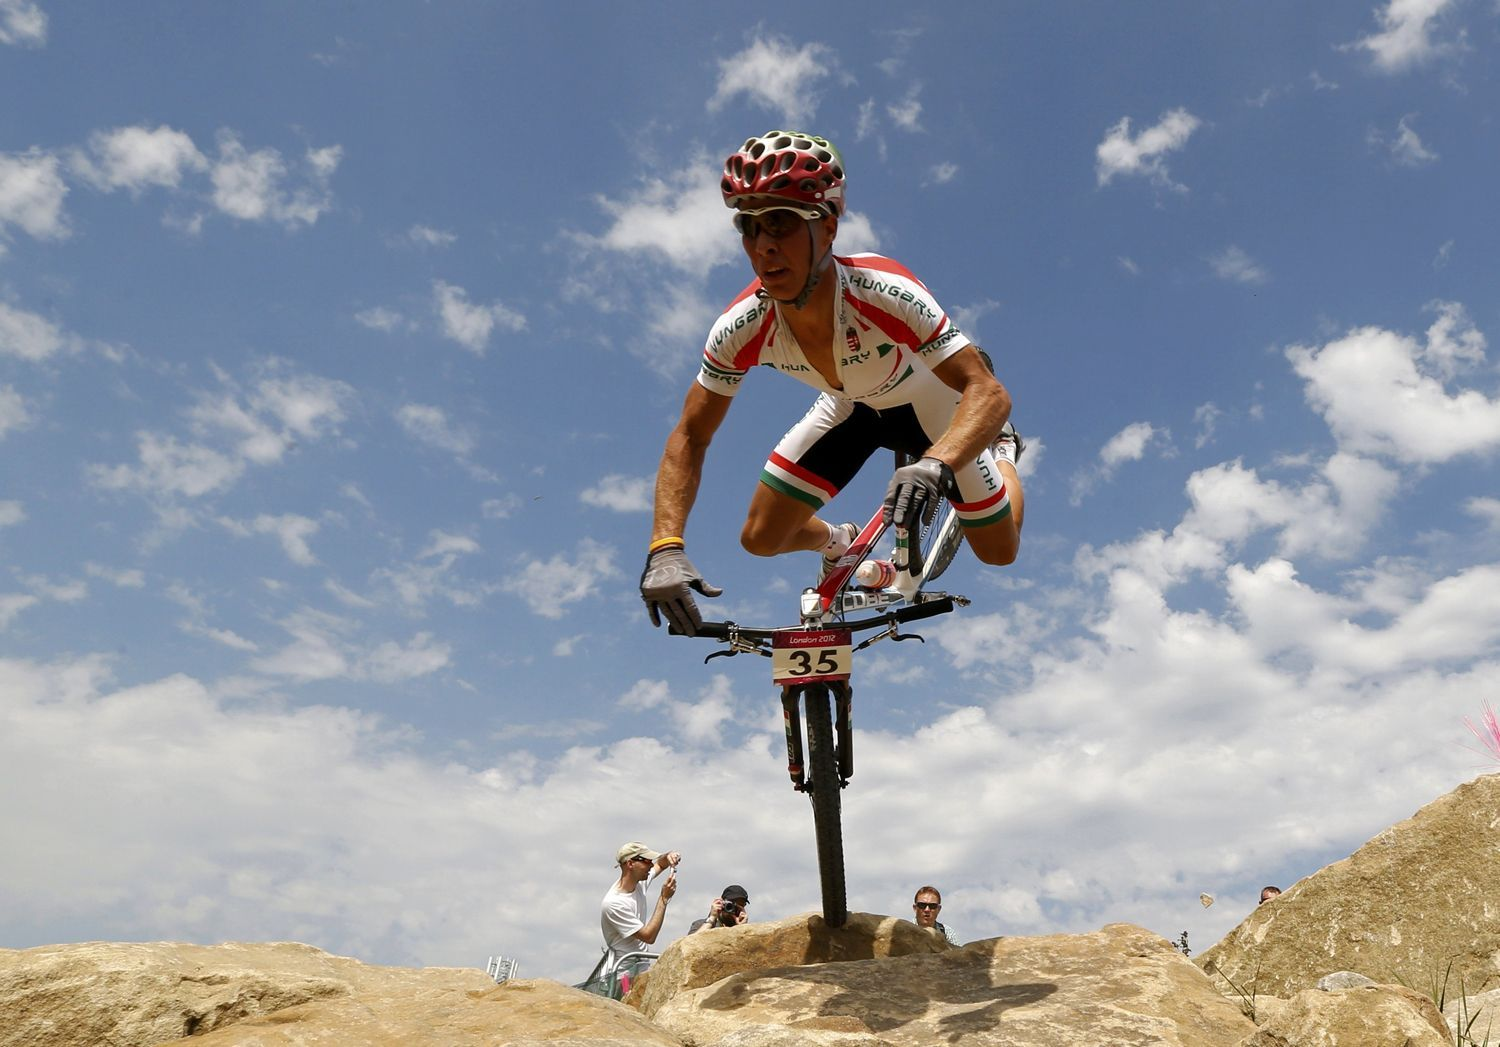 mountain biking crash Google Search Bike events, Cross